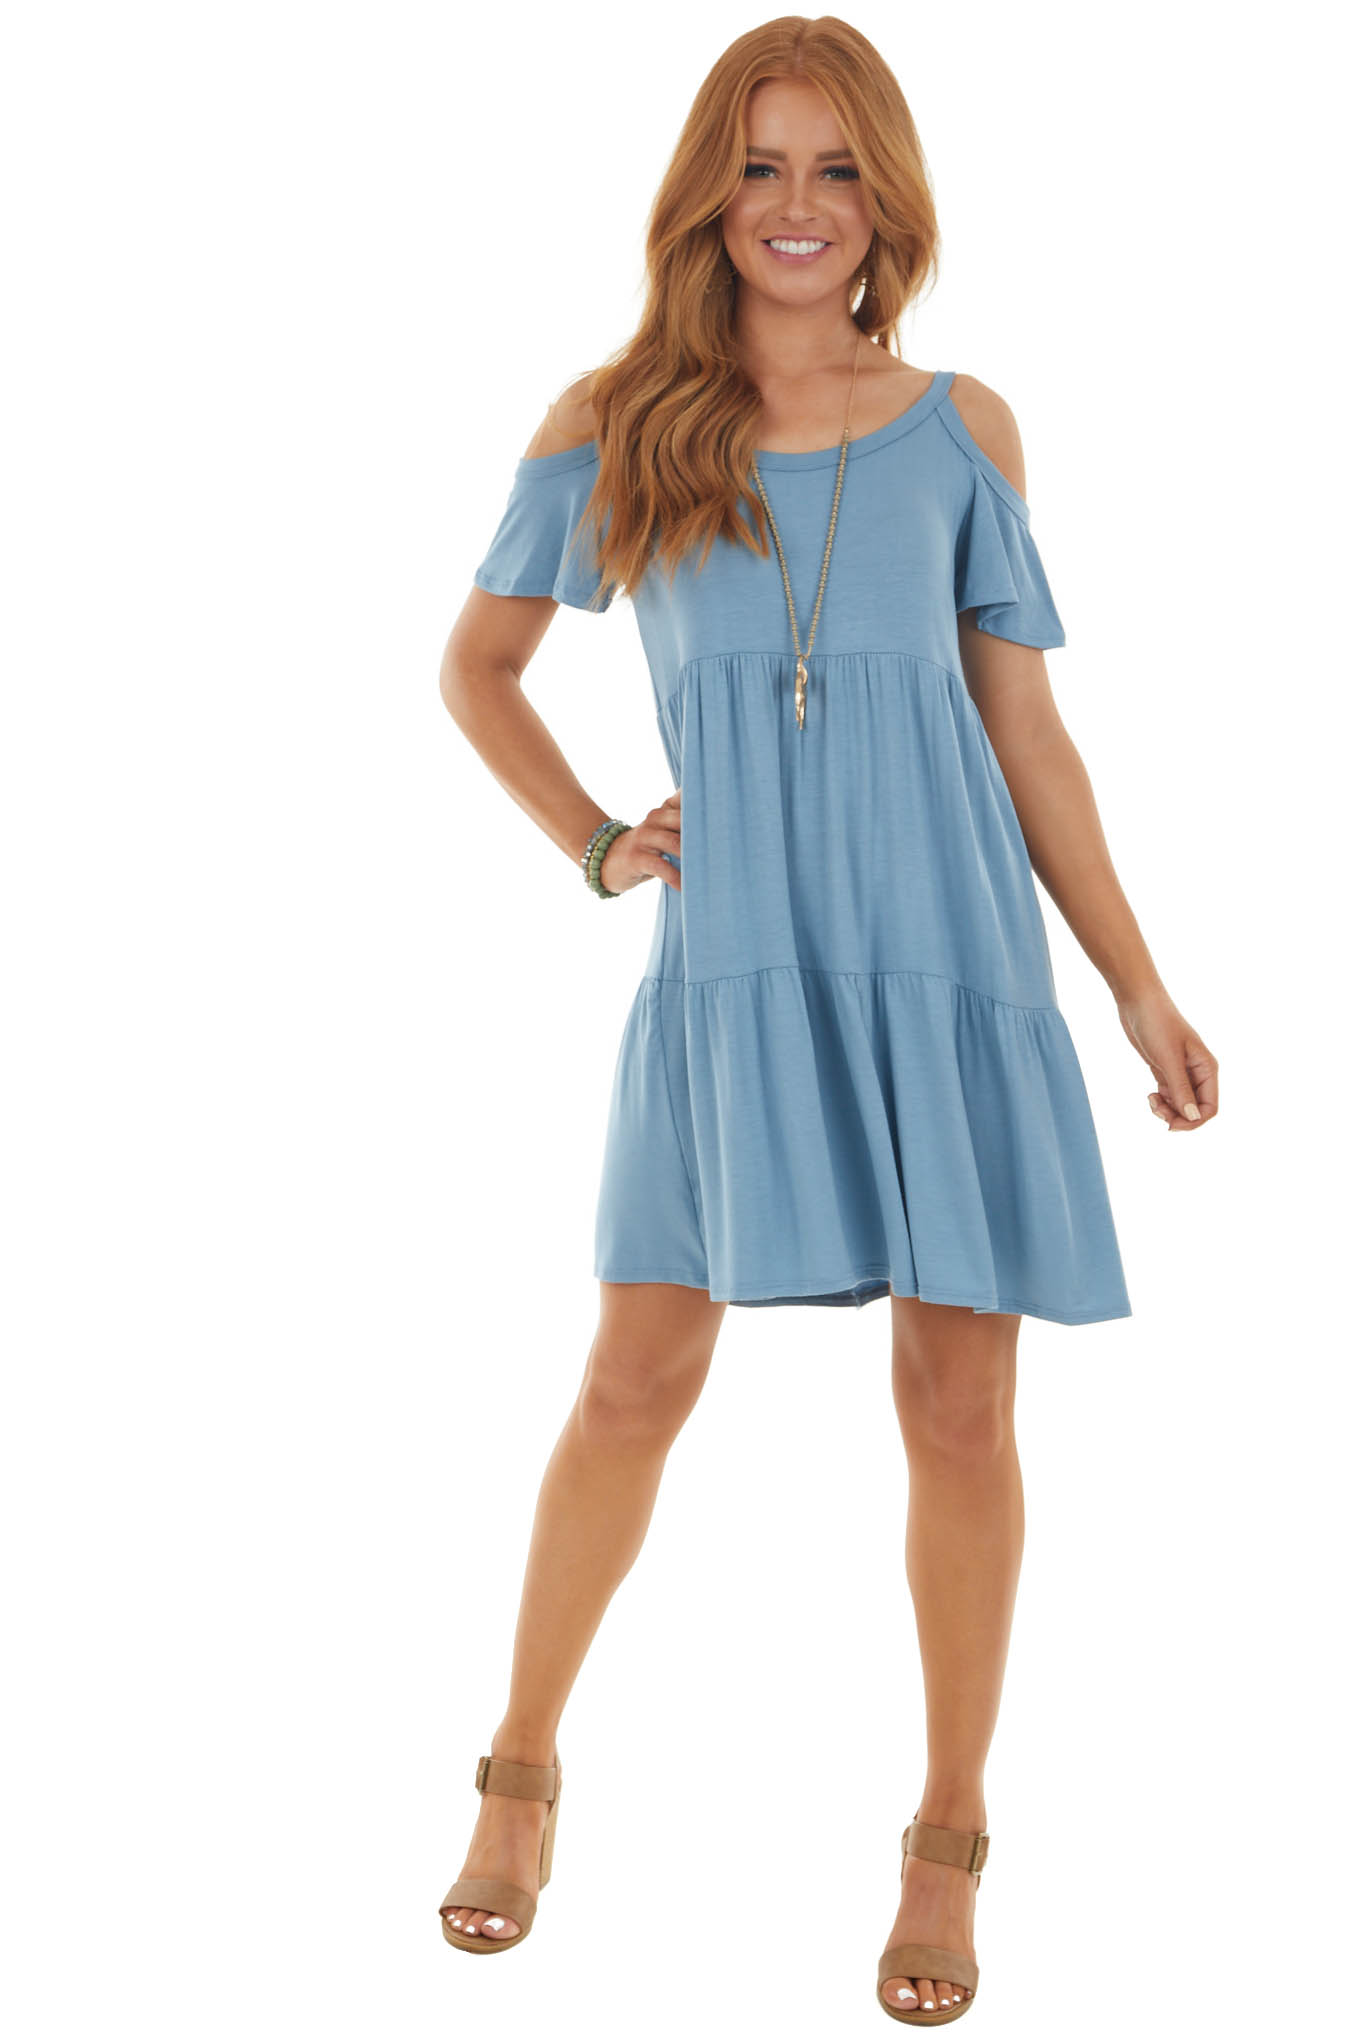 Powder Babydoll Tiered Knit Short Dress with Cold Shoulders